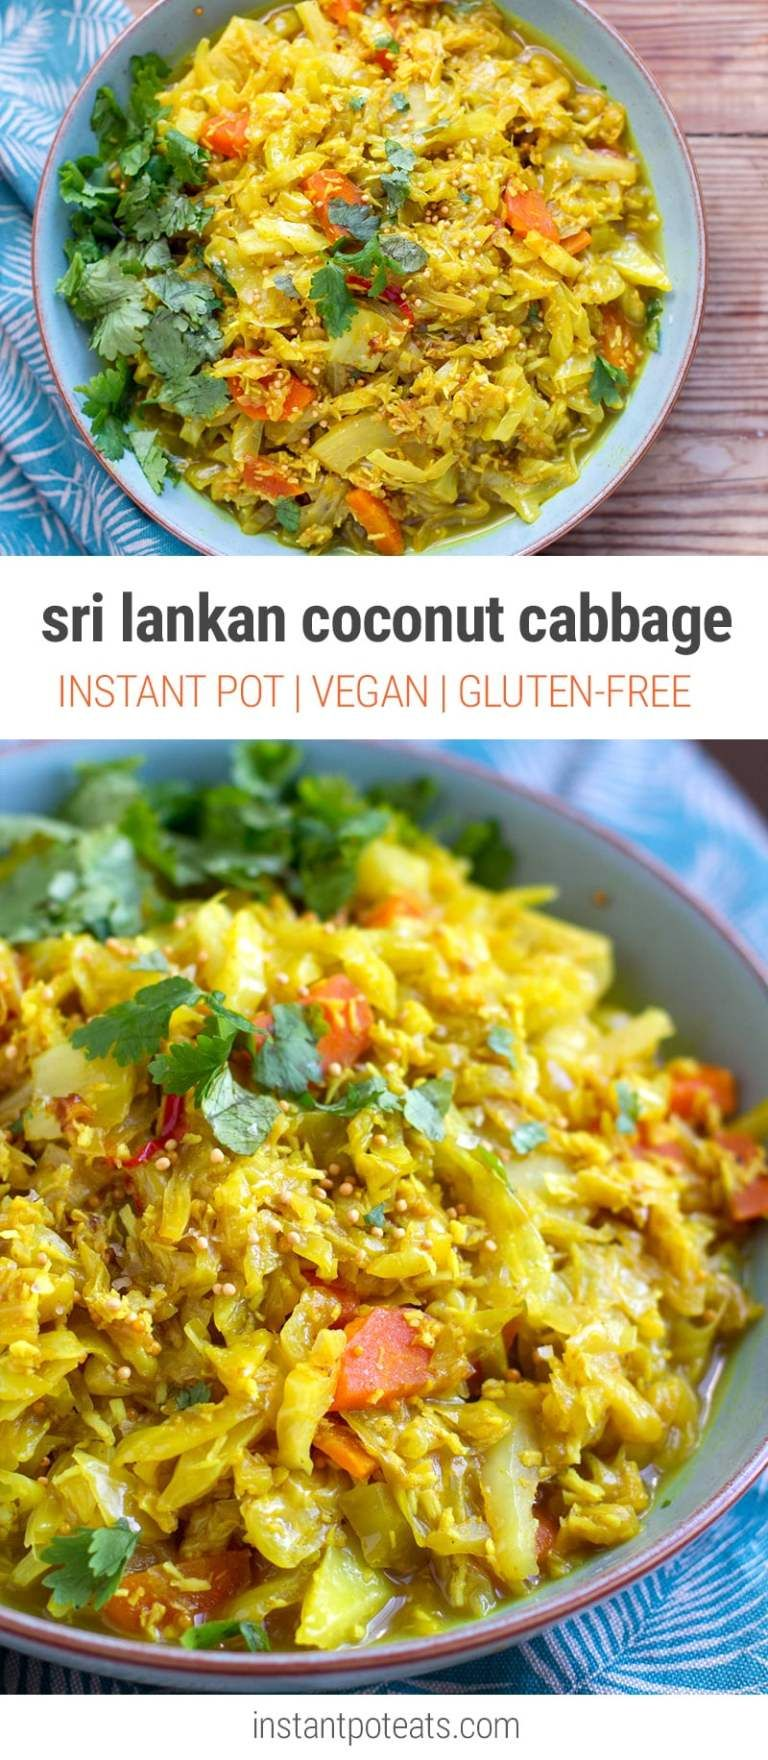 Sri Lankan Coconut Cabbage Instant Pot